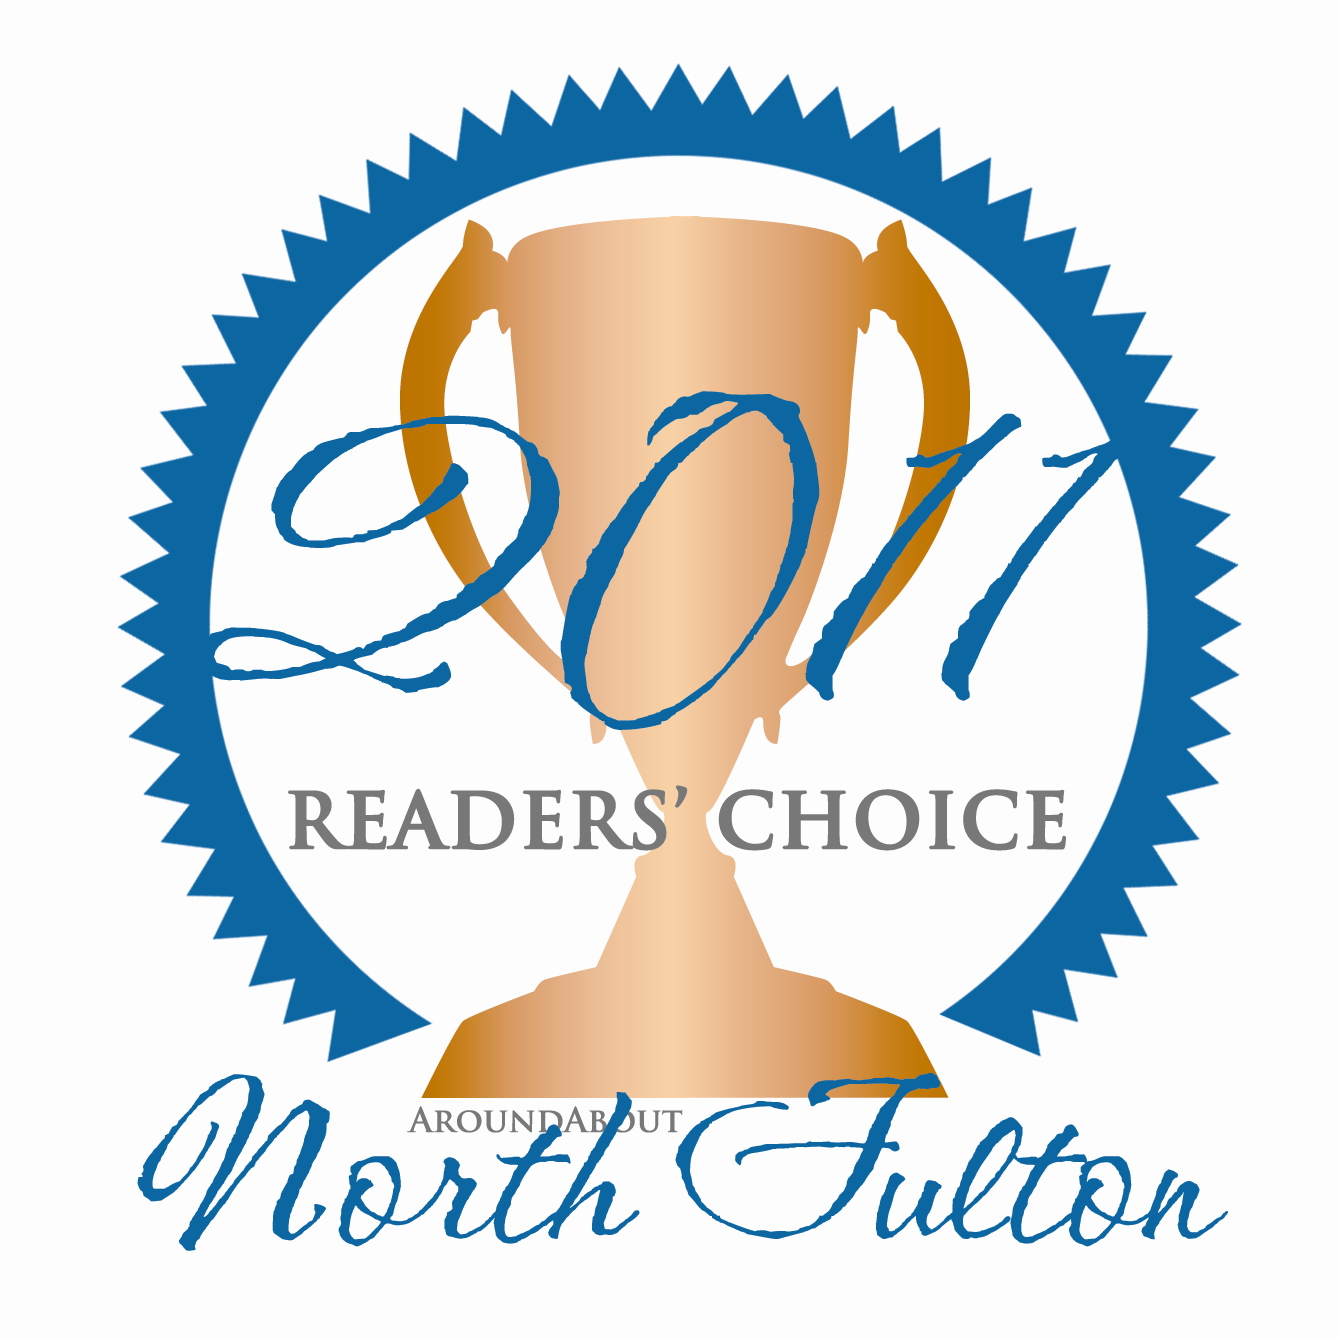 Around About North Fulton Reader's Choice Award